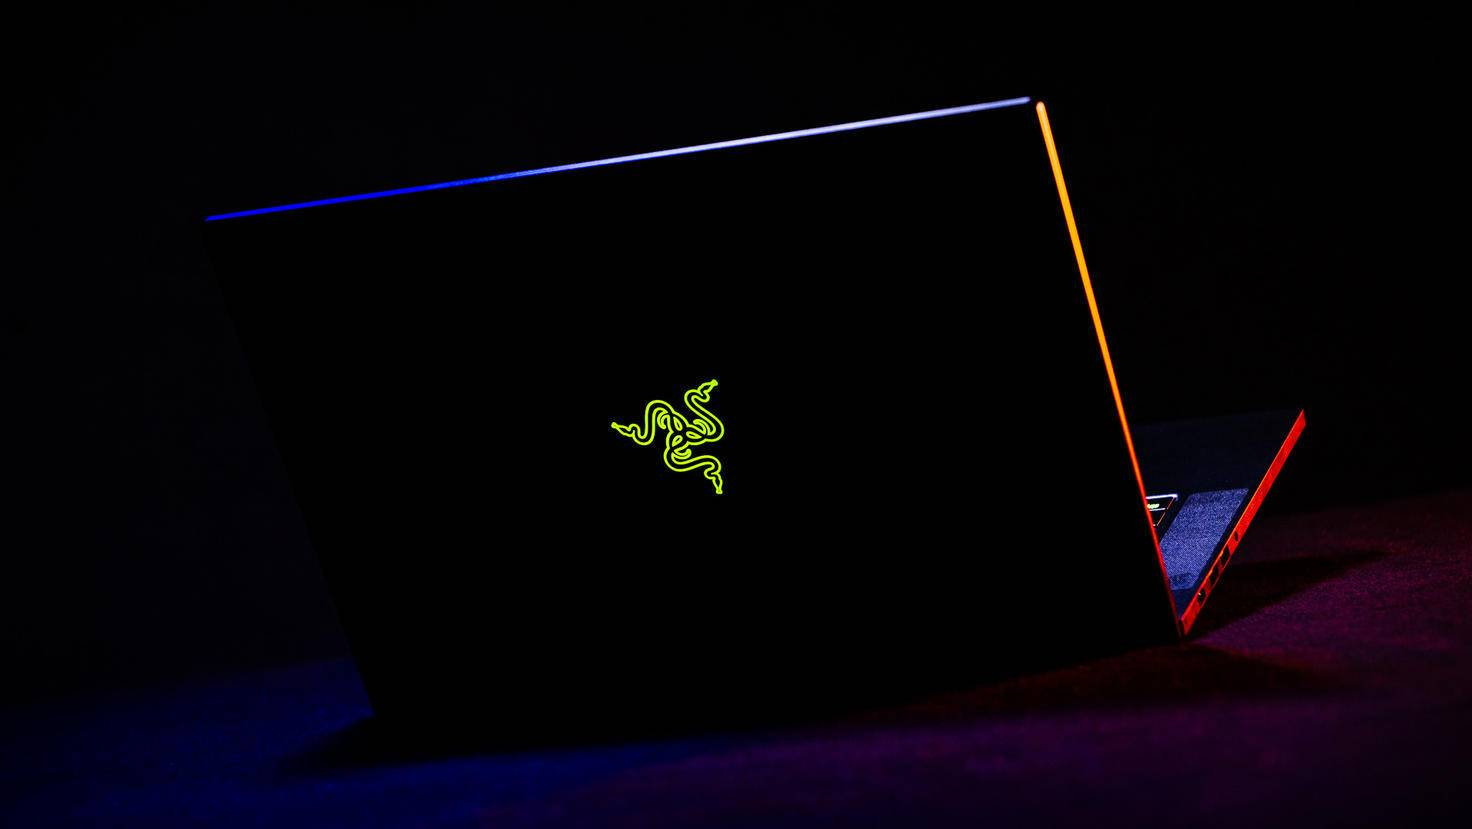 razer-blade-15-profi-advanced-2019-5